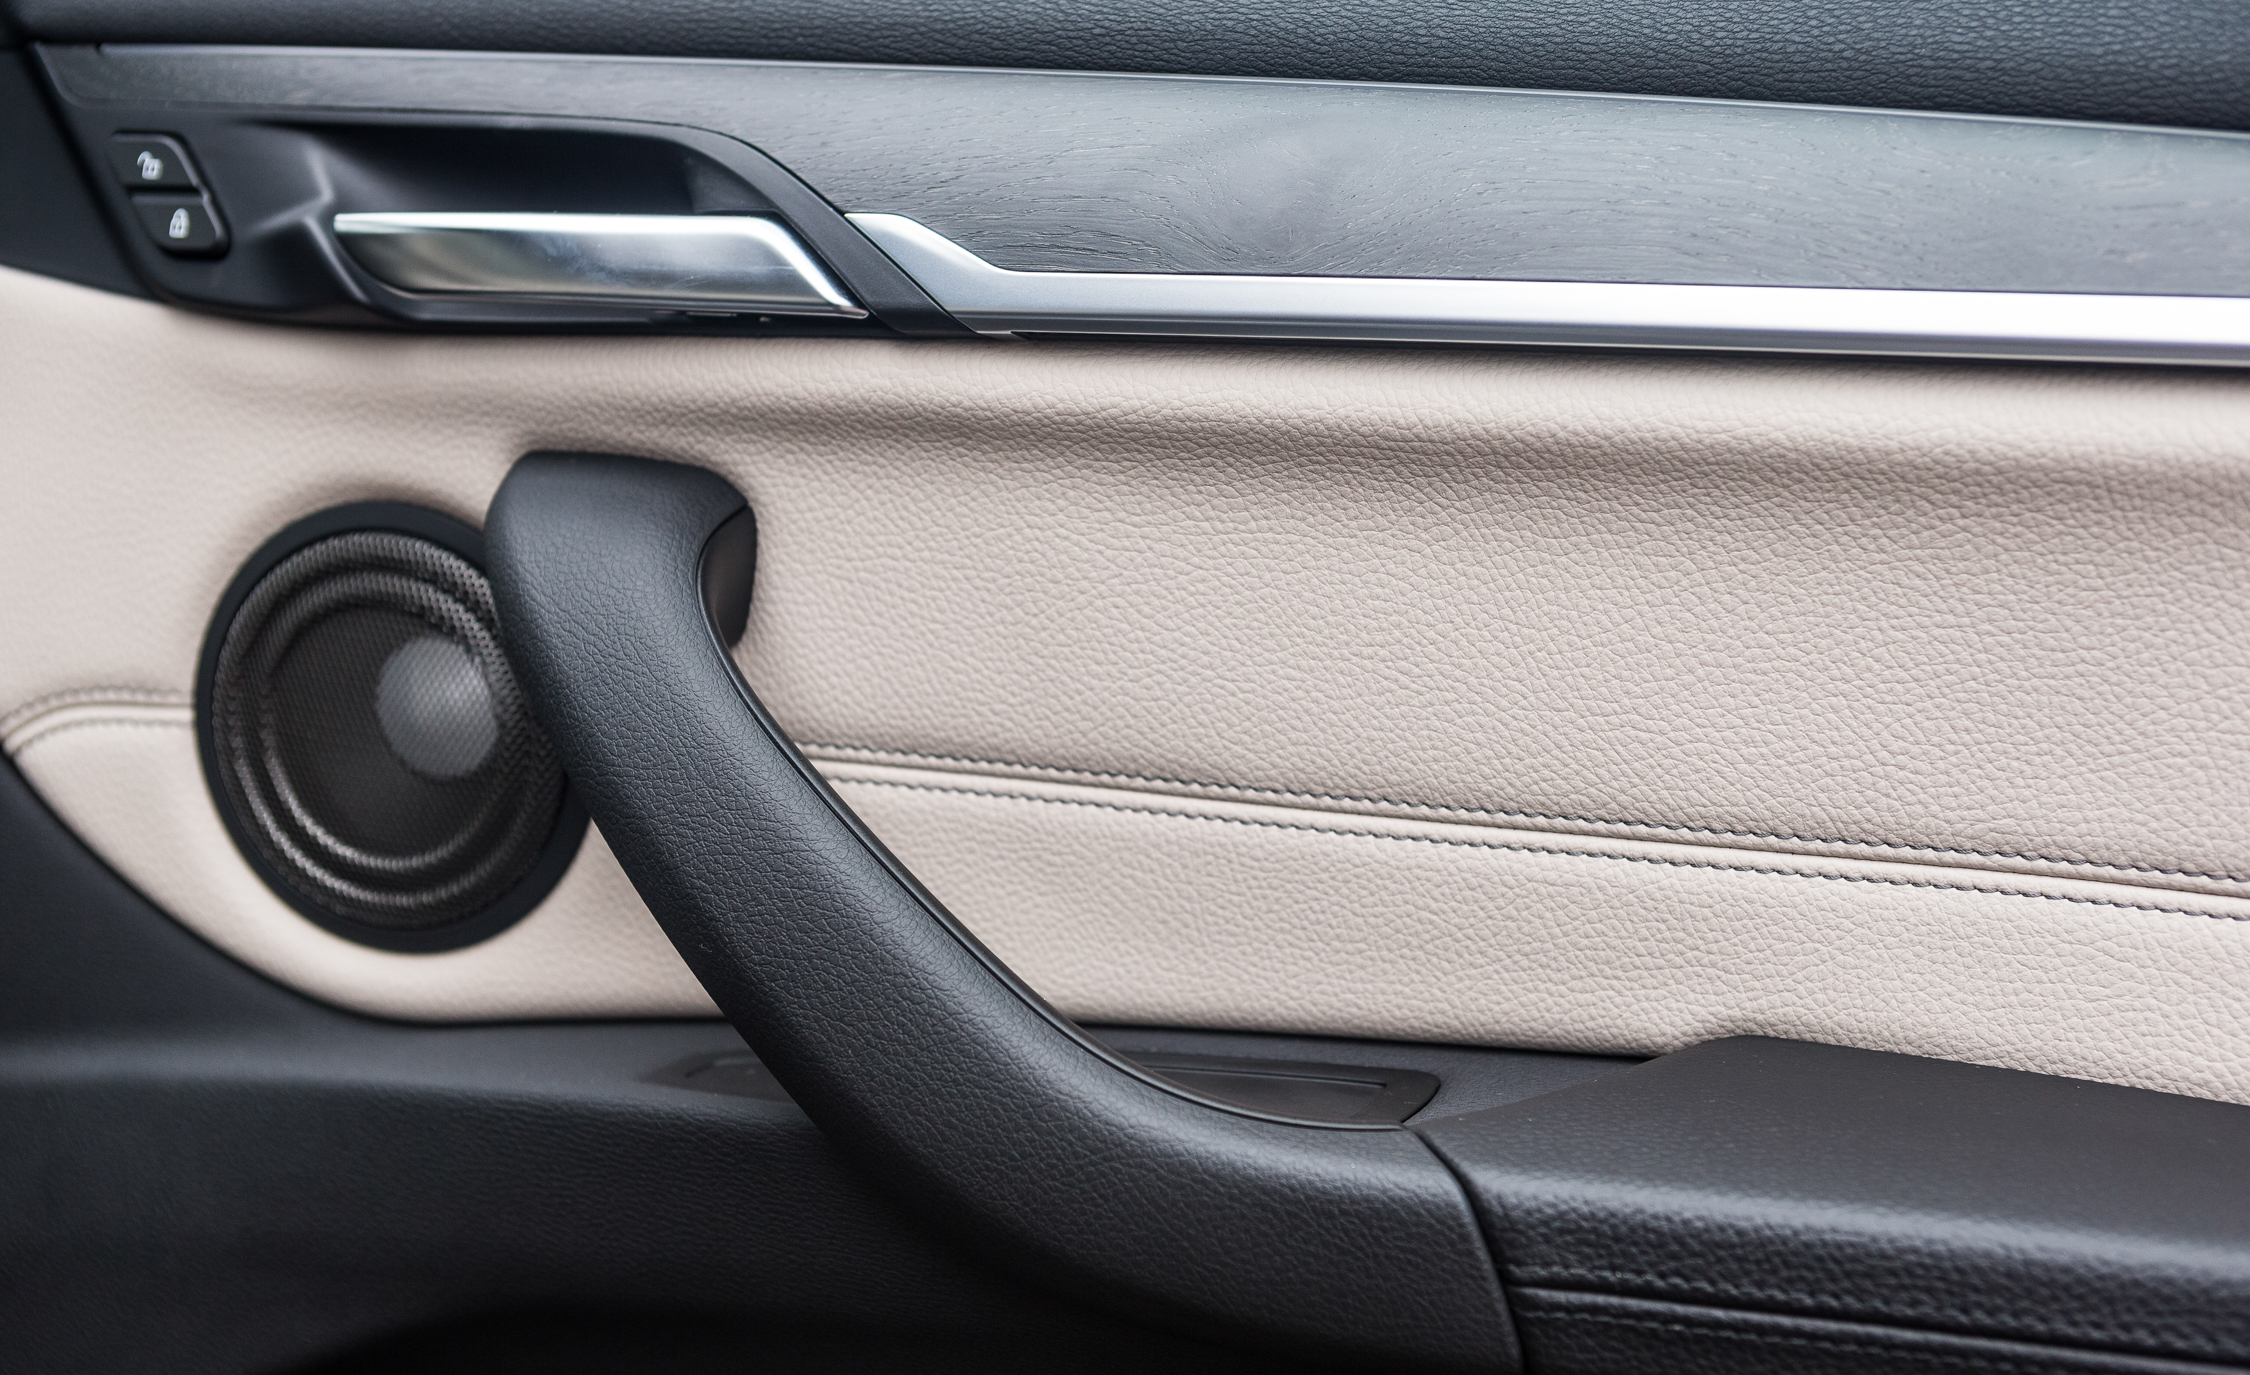 2016 BMW X1 Interior View Door Panels (Photo 11 of 36)